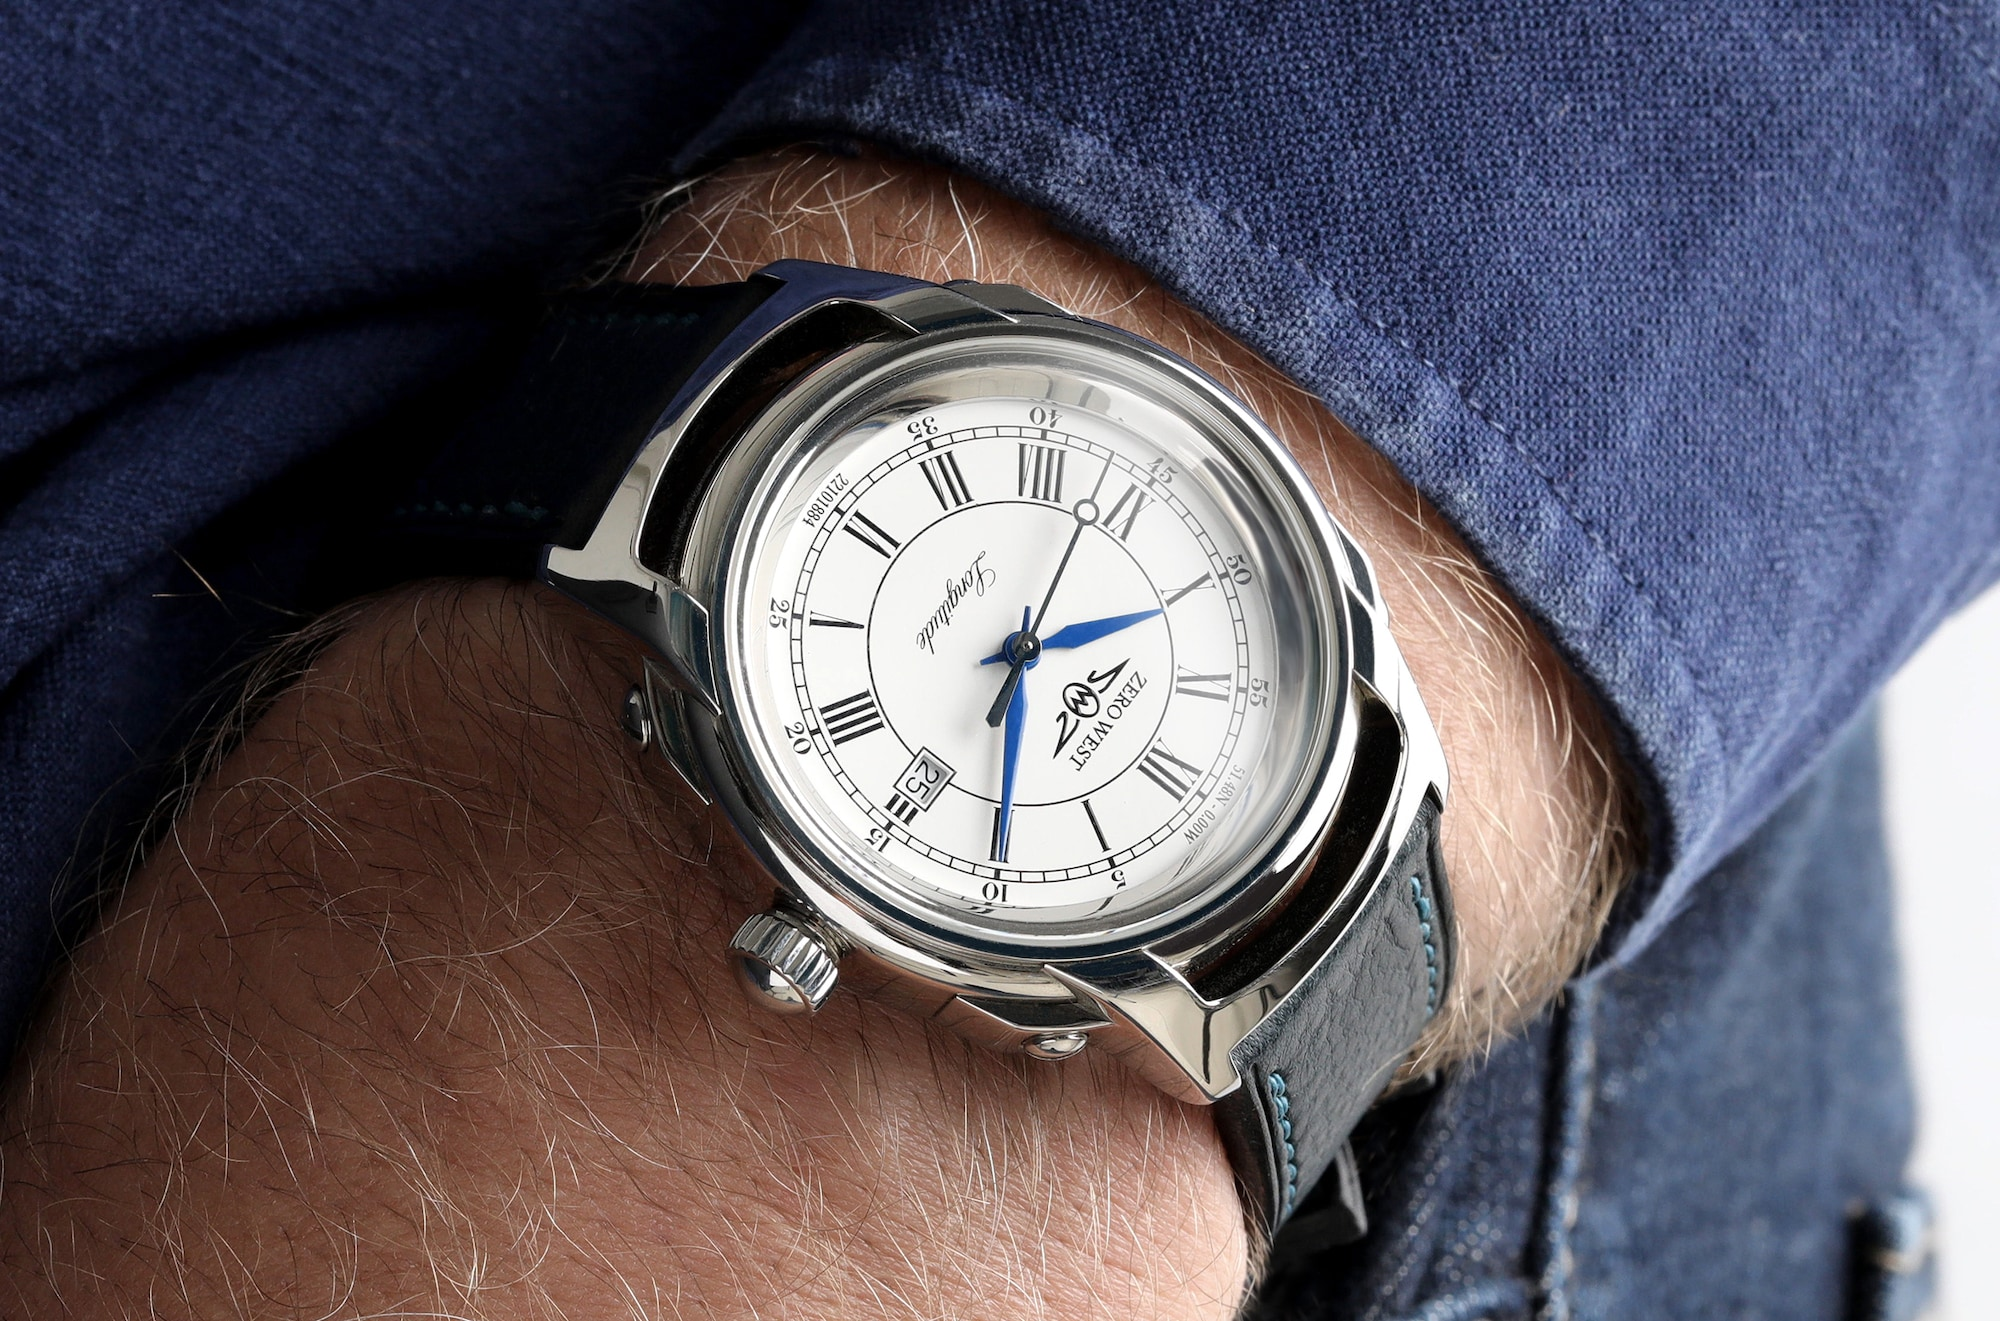 L1 Longitude watch with blue jeans and shirt